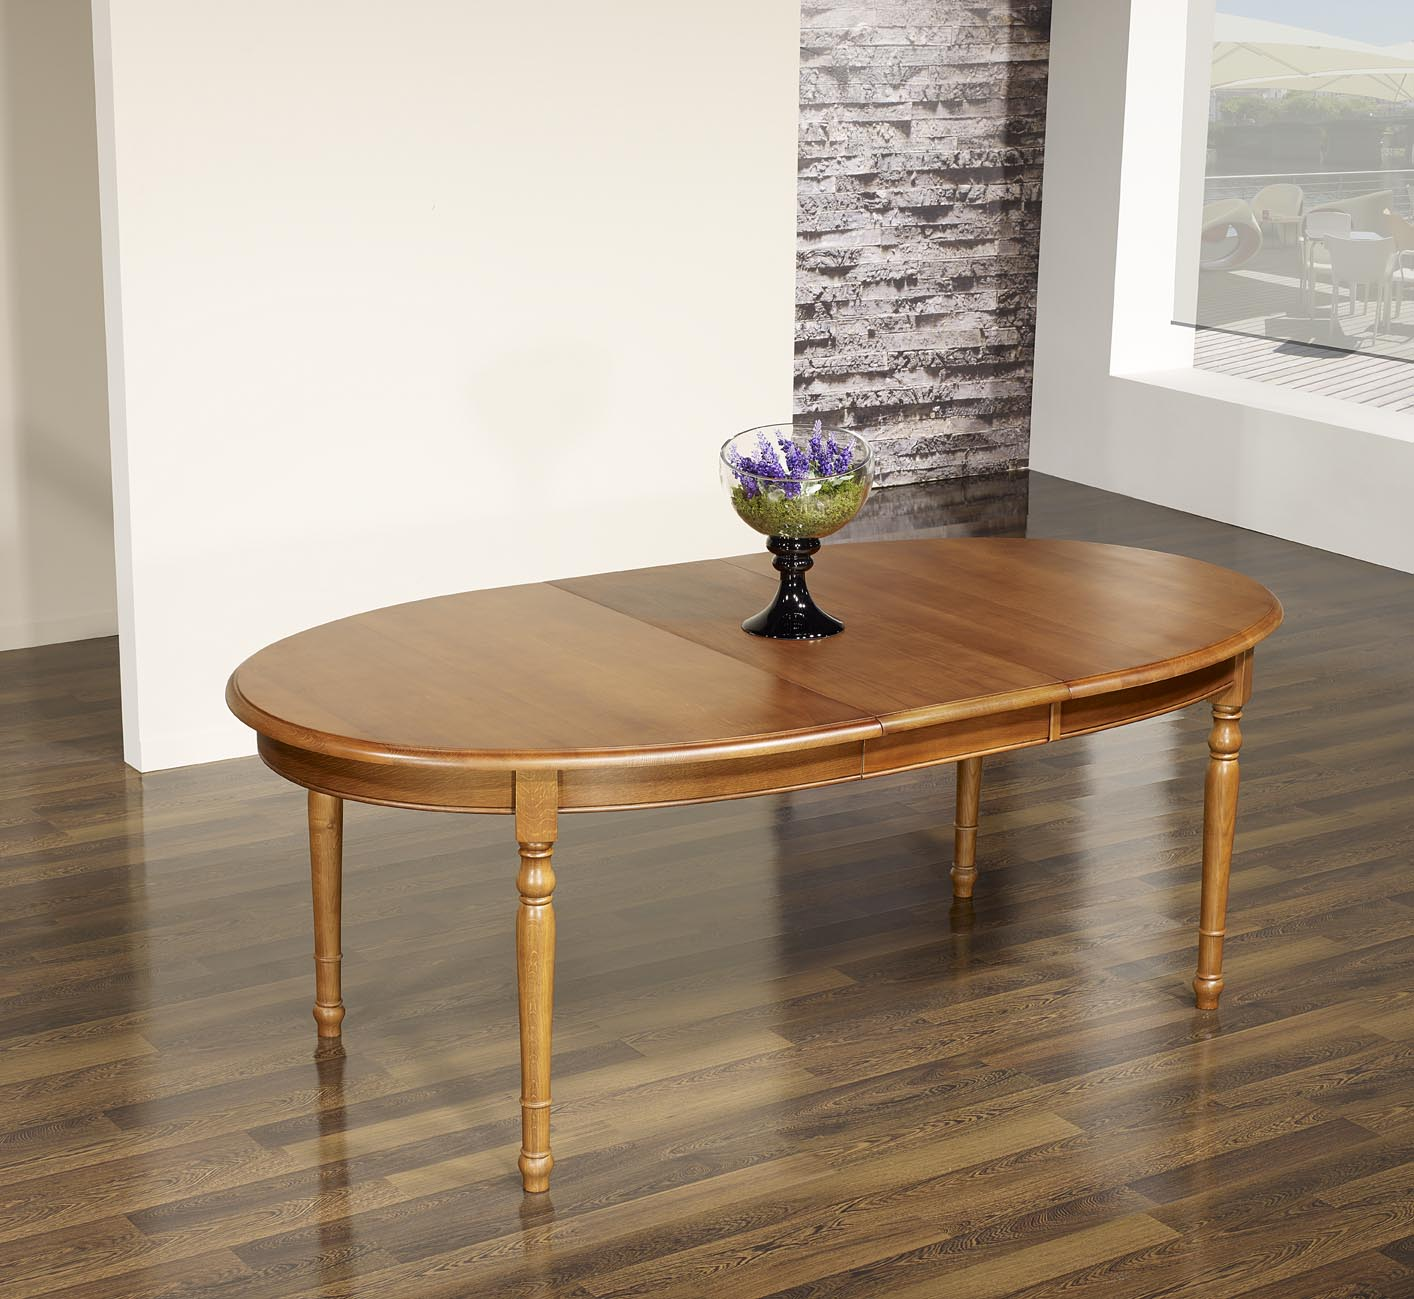 Table ovale 170x110 en ch ne massif de style louis for Table ovale allonge